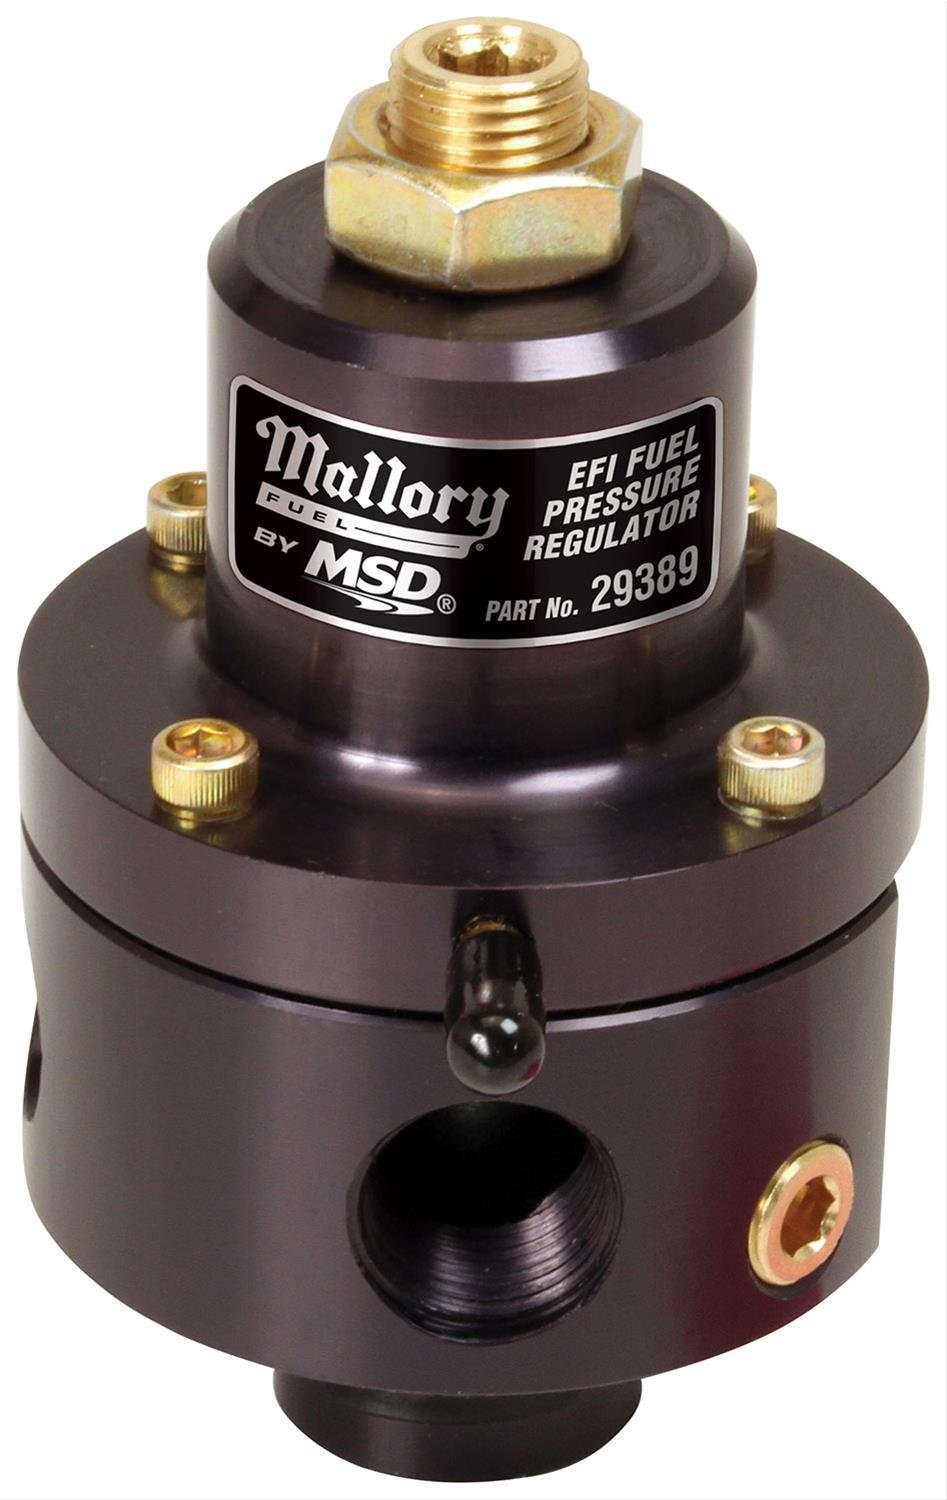 Mallory Universal Fuel Pressure Regulators for Fuel Injection 29389 - Free  Shipping on Orders Over $49 at Summit Racing